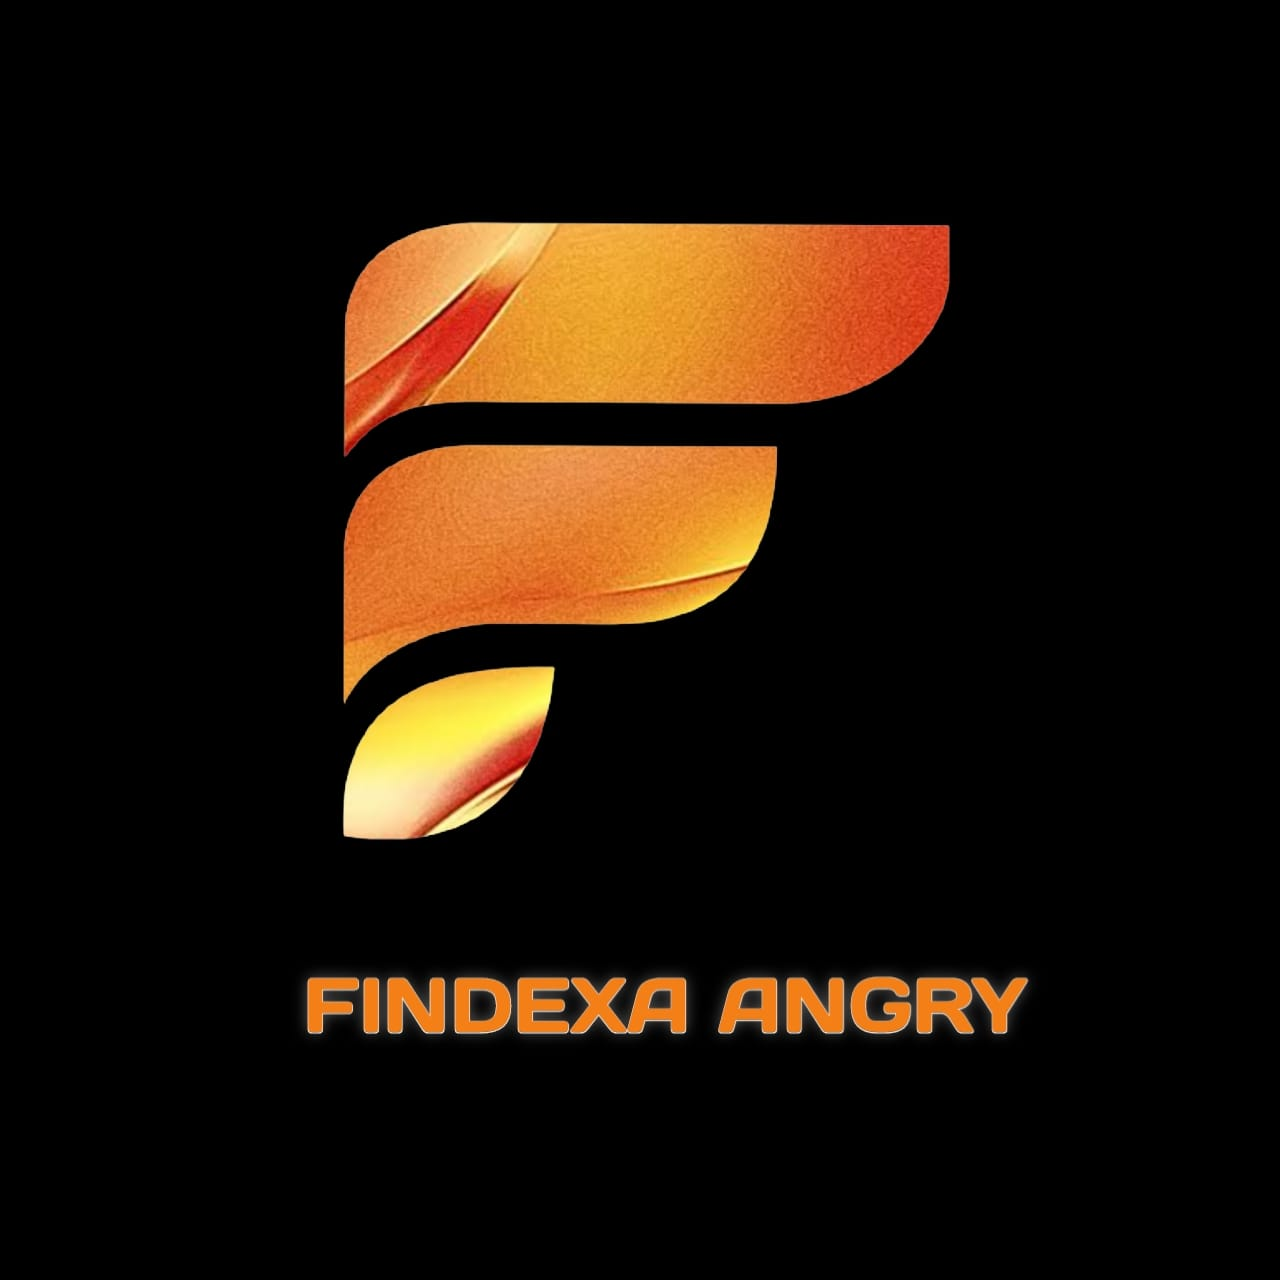 FINDEXA 4NGRY